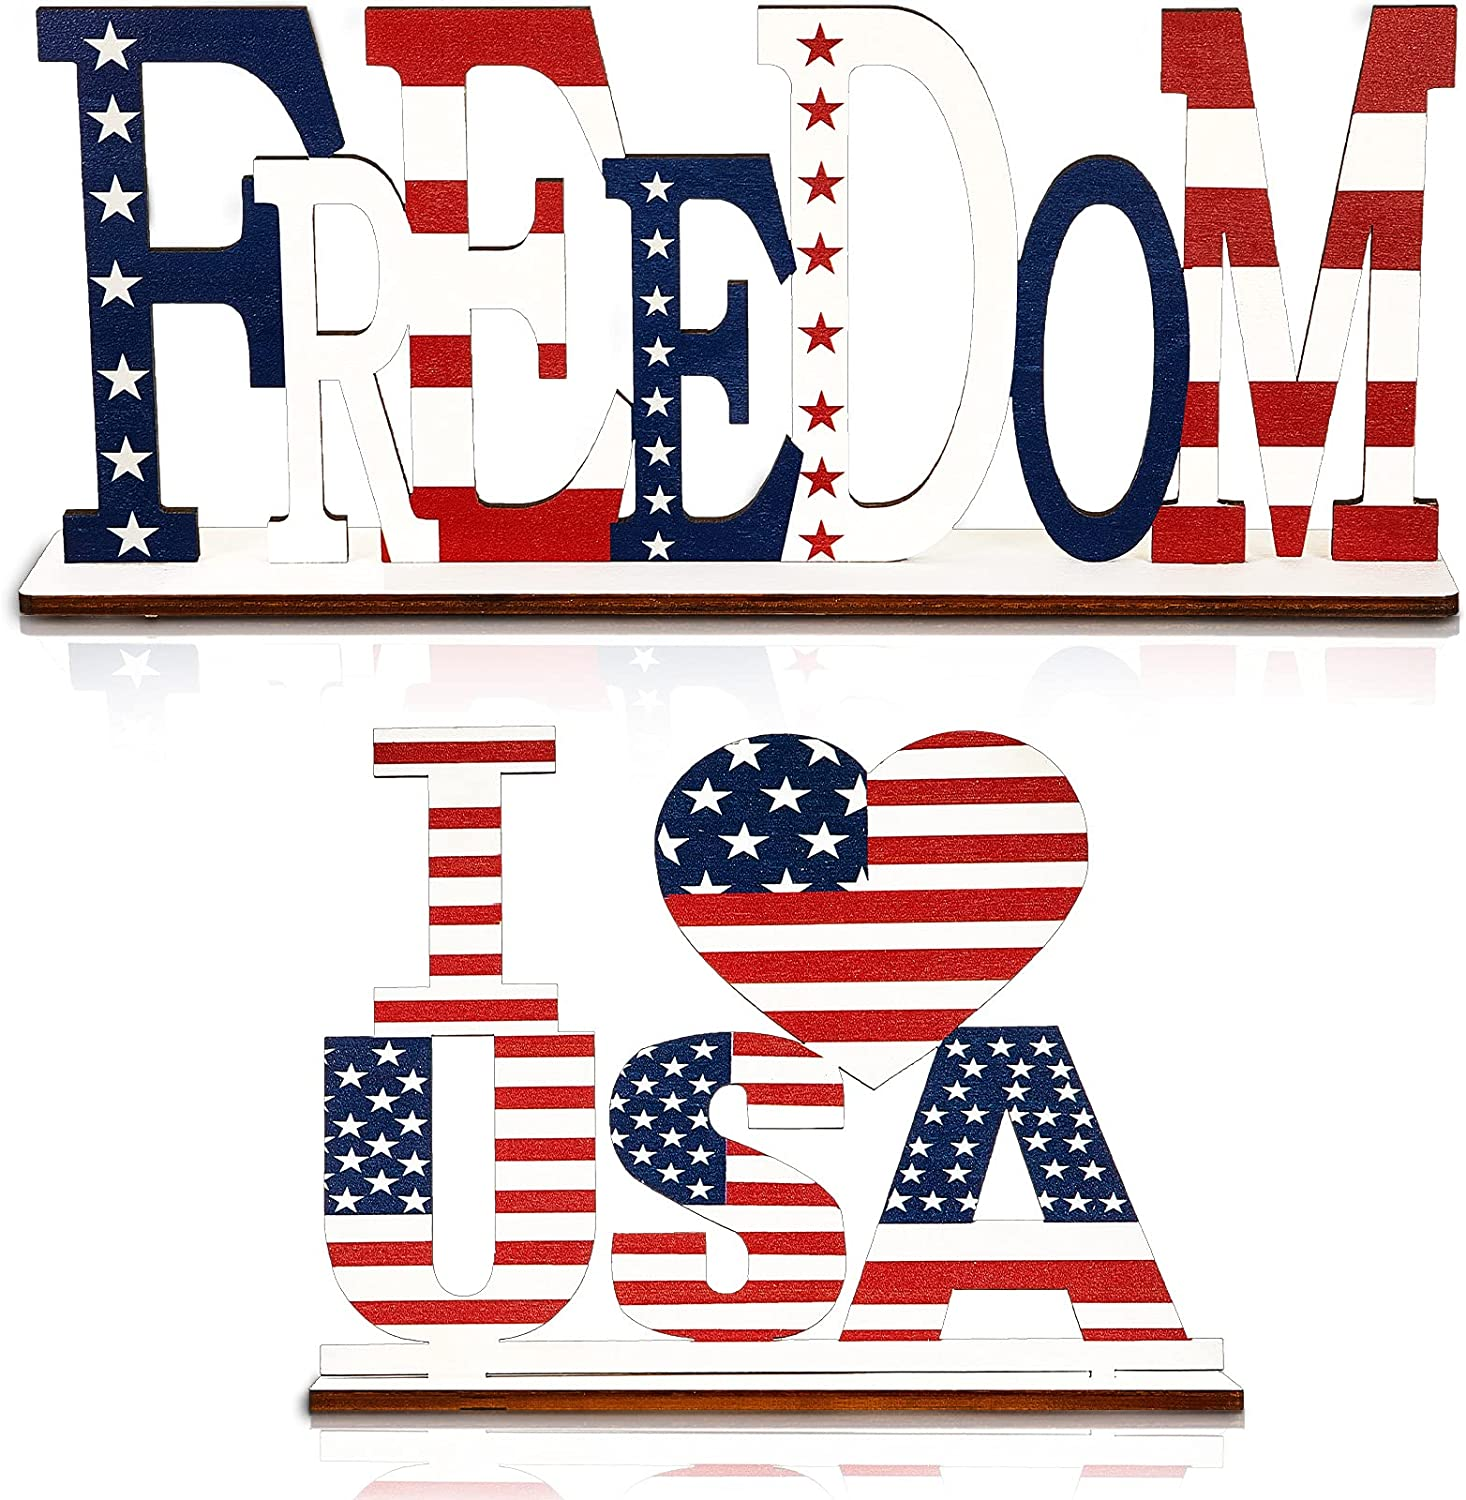 2 Pieces Independence Day Wooden Home Table Decoration 4th of July Letter Sign Blessed Table Centerpiece Patriotic Wooden I Love USA and Freedom Decorative Plaque for Memorial Day Home Room Decor